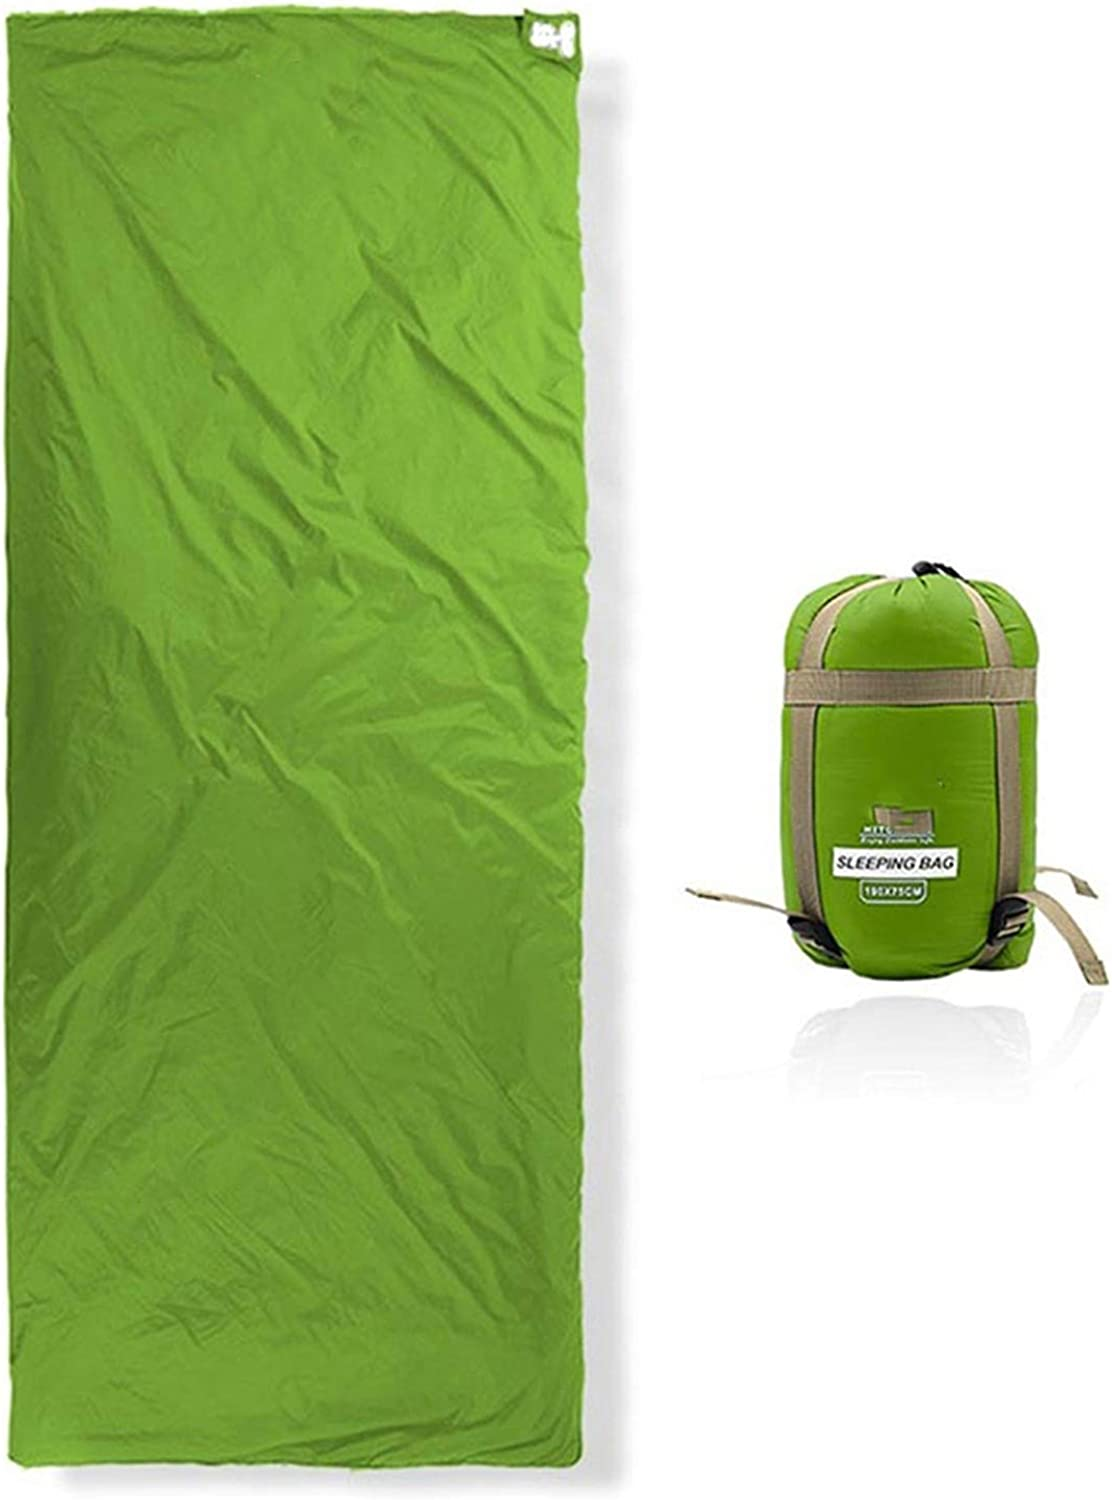 Outdoor Splicing Sleeping Bag Ultra Light Adult Portable Camping Hiking Bags Sleeping Bags Spring Autumn Lazy Bag Arrival,Green,